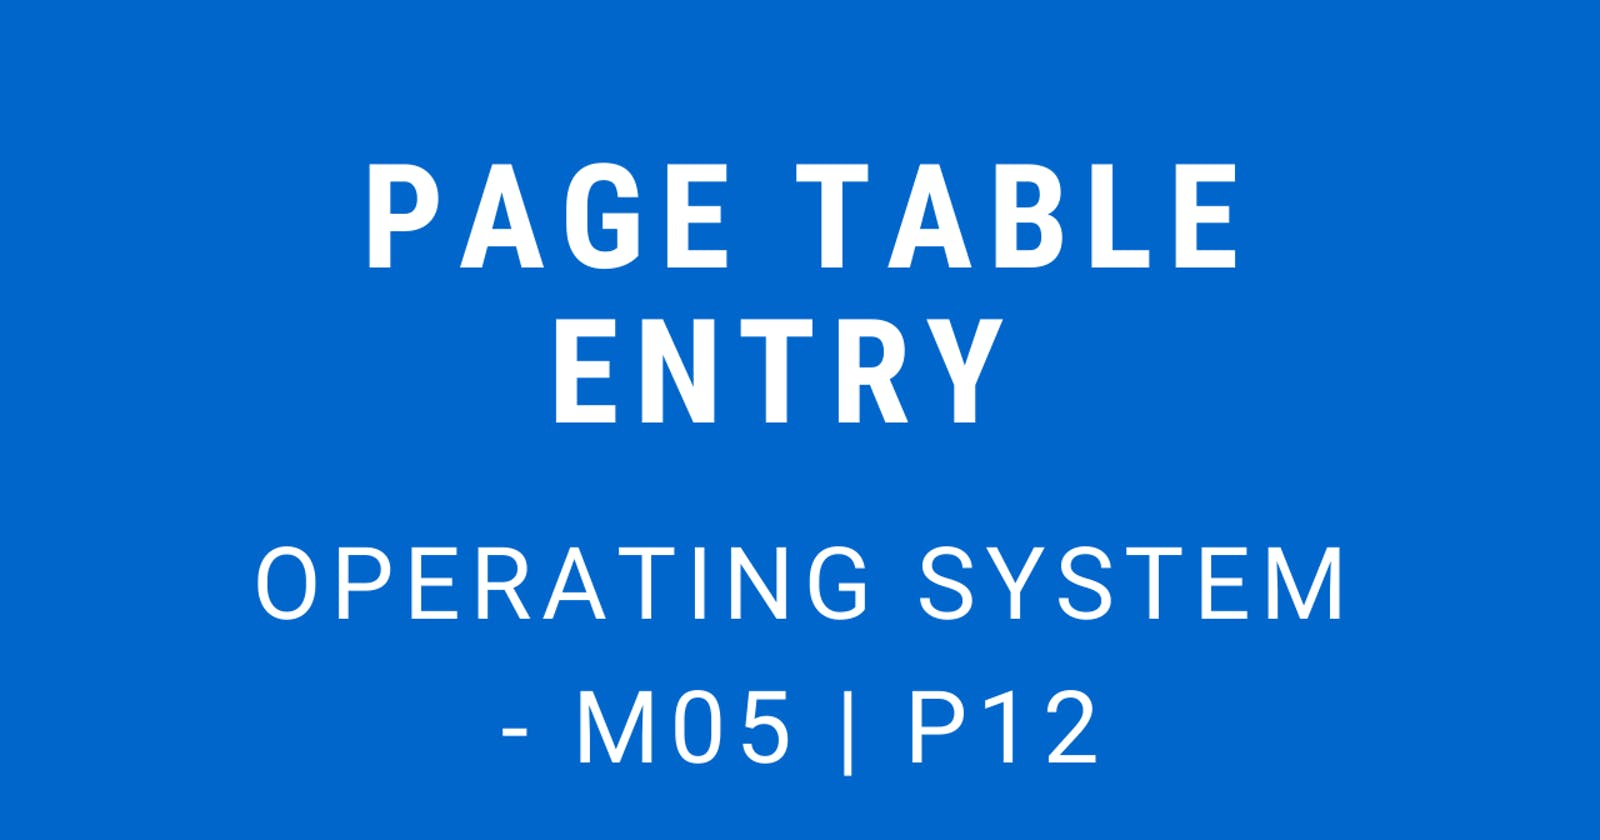 Page Table Entry   Operating System - M05 P12